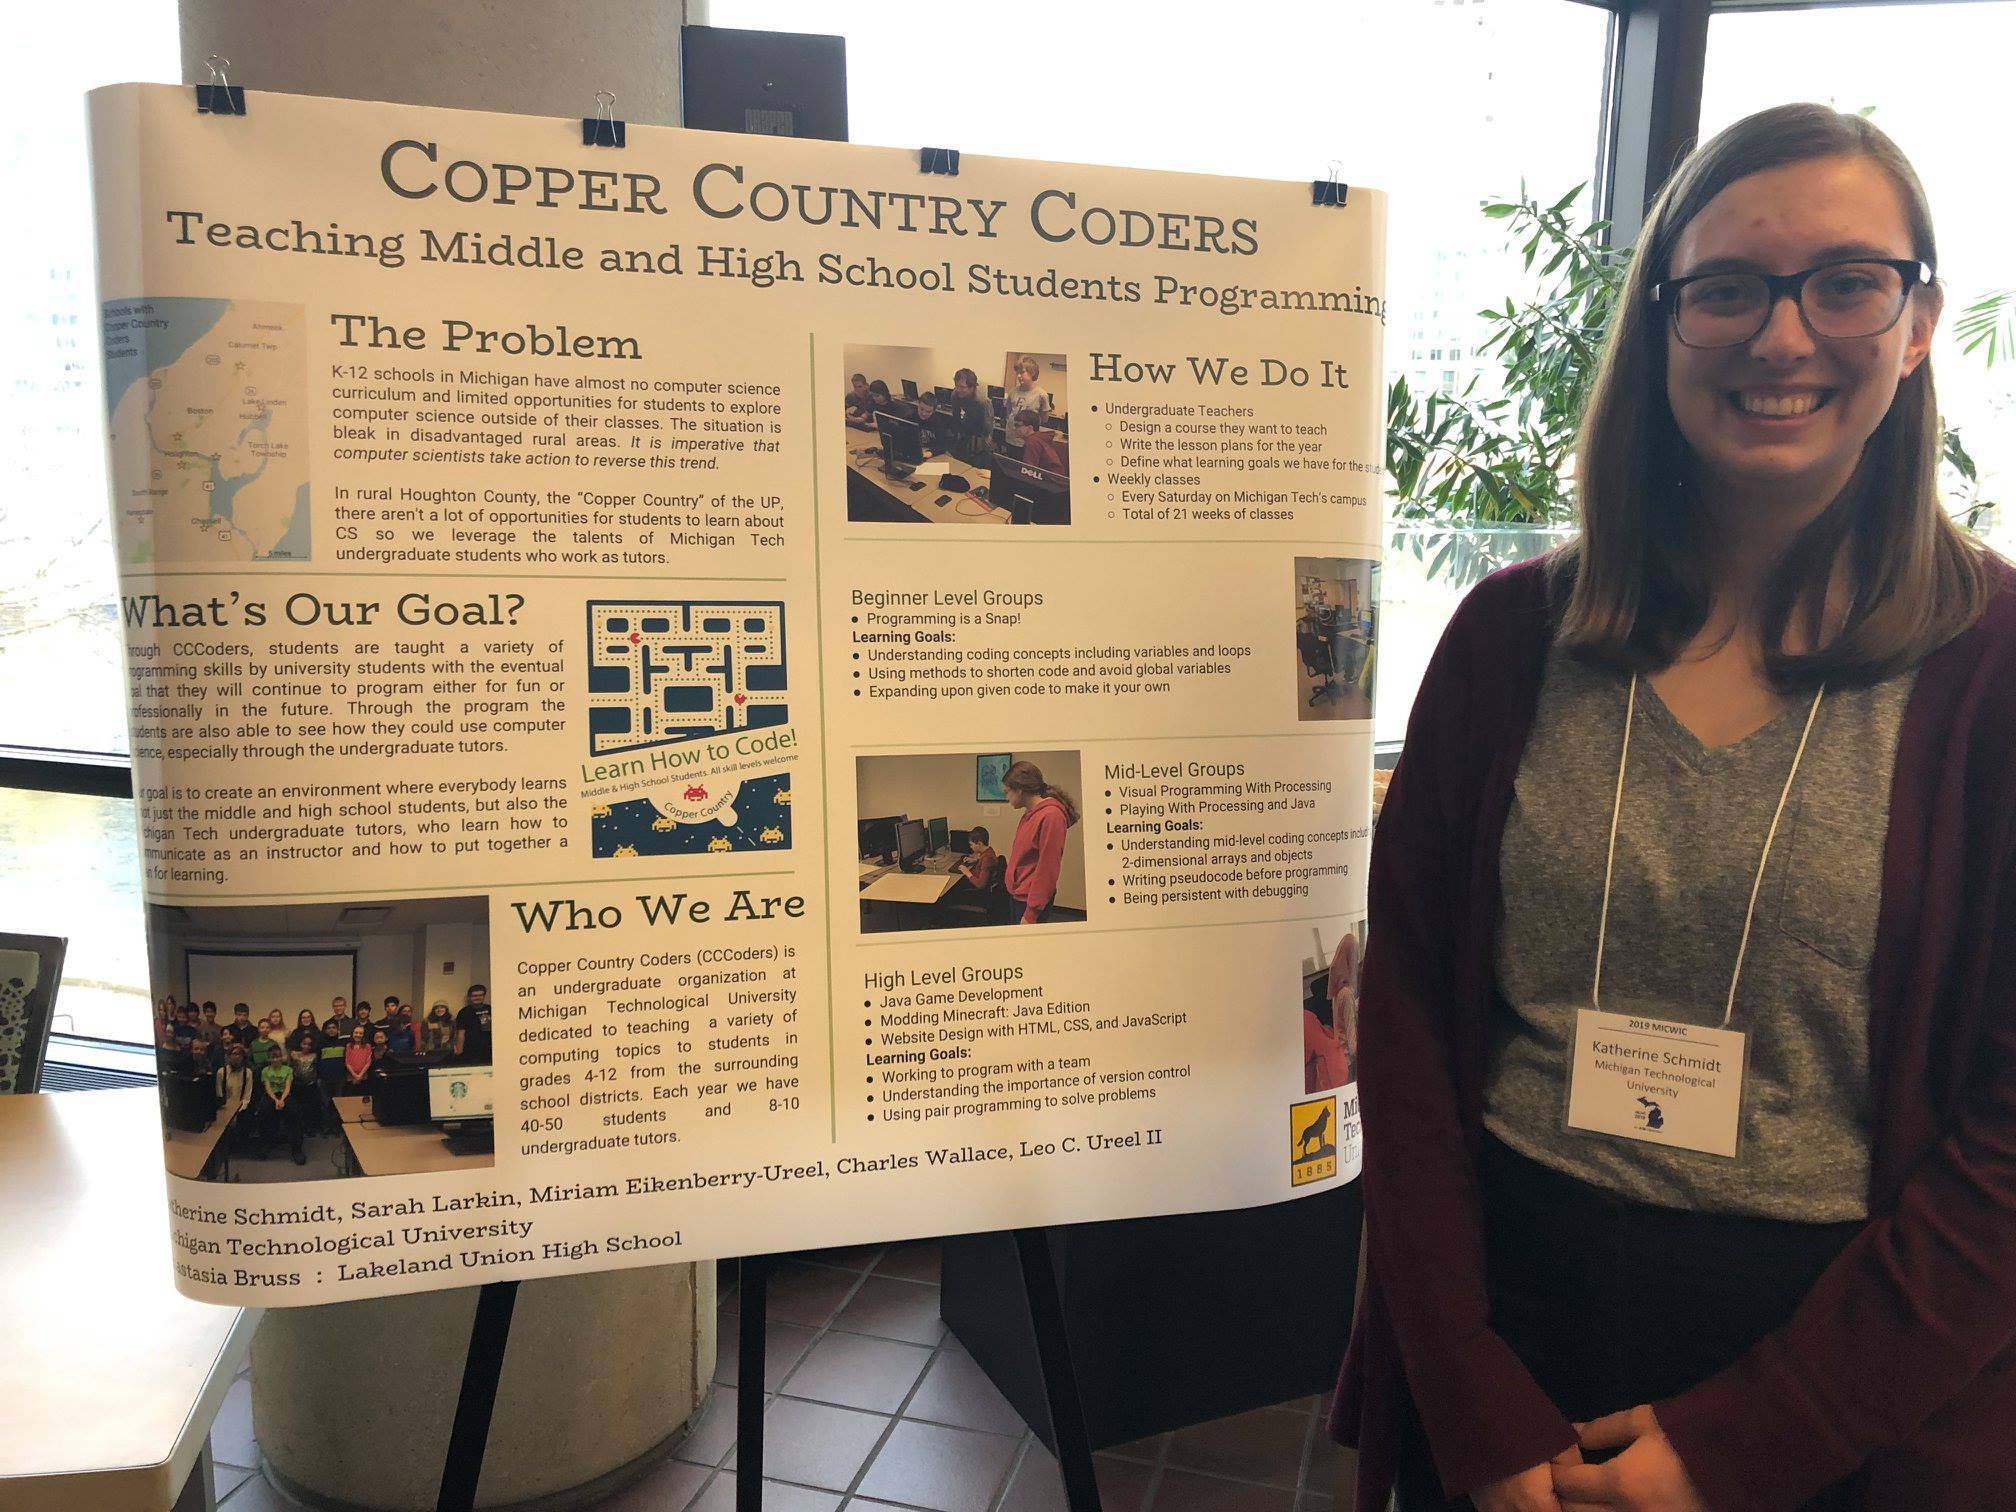 Katie Schmidt at MICWIC 2019